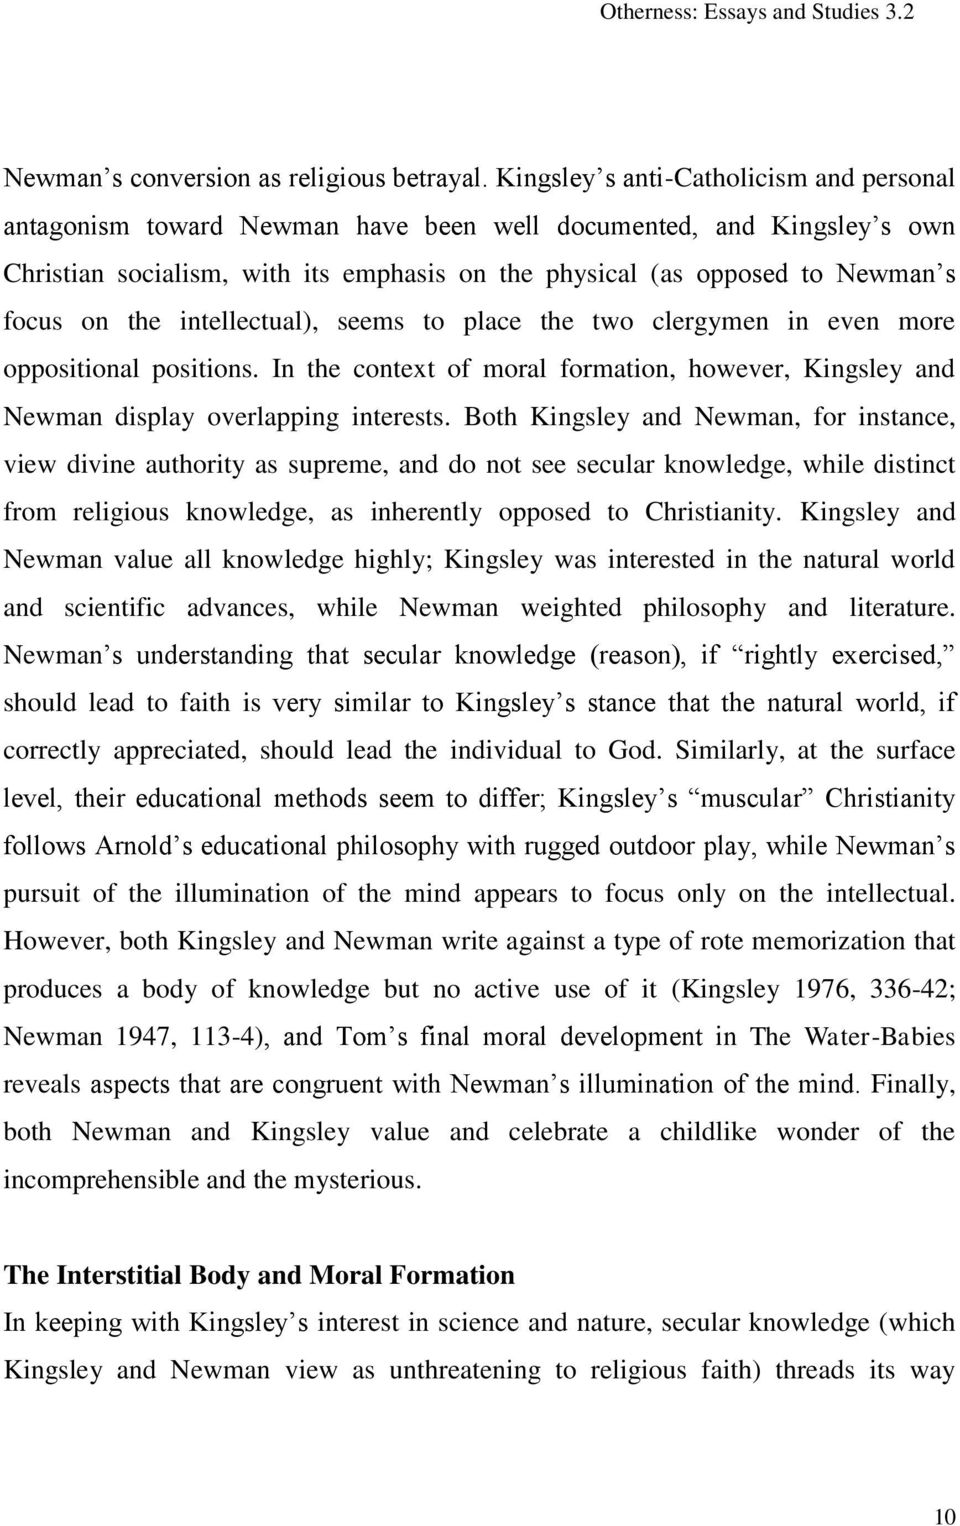 the intellectual), seems to place the two clergymen in even more oppositional positions. In the context of moral formation, however, Kingsley and Newman display overlapping interests.